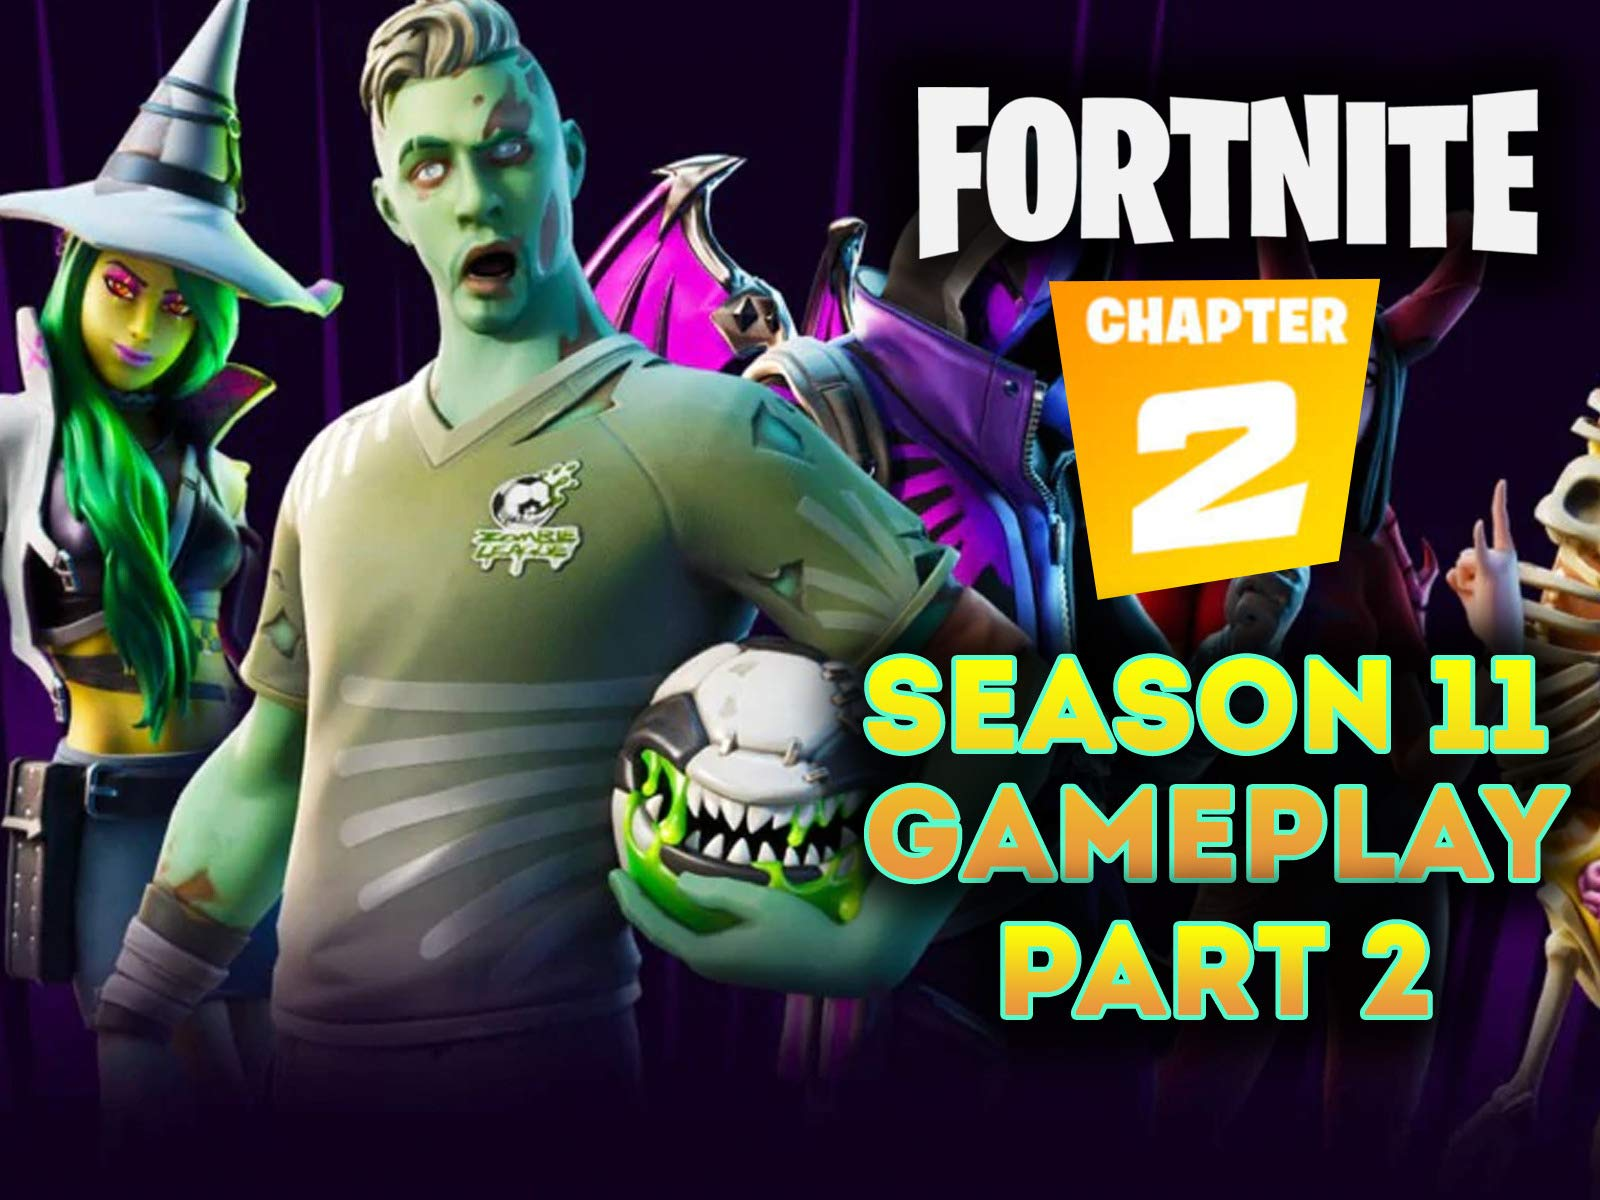 Watch Clip Fortnite Chapter 2 Season 11 Gameplay Part 2 Prime Video